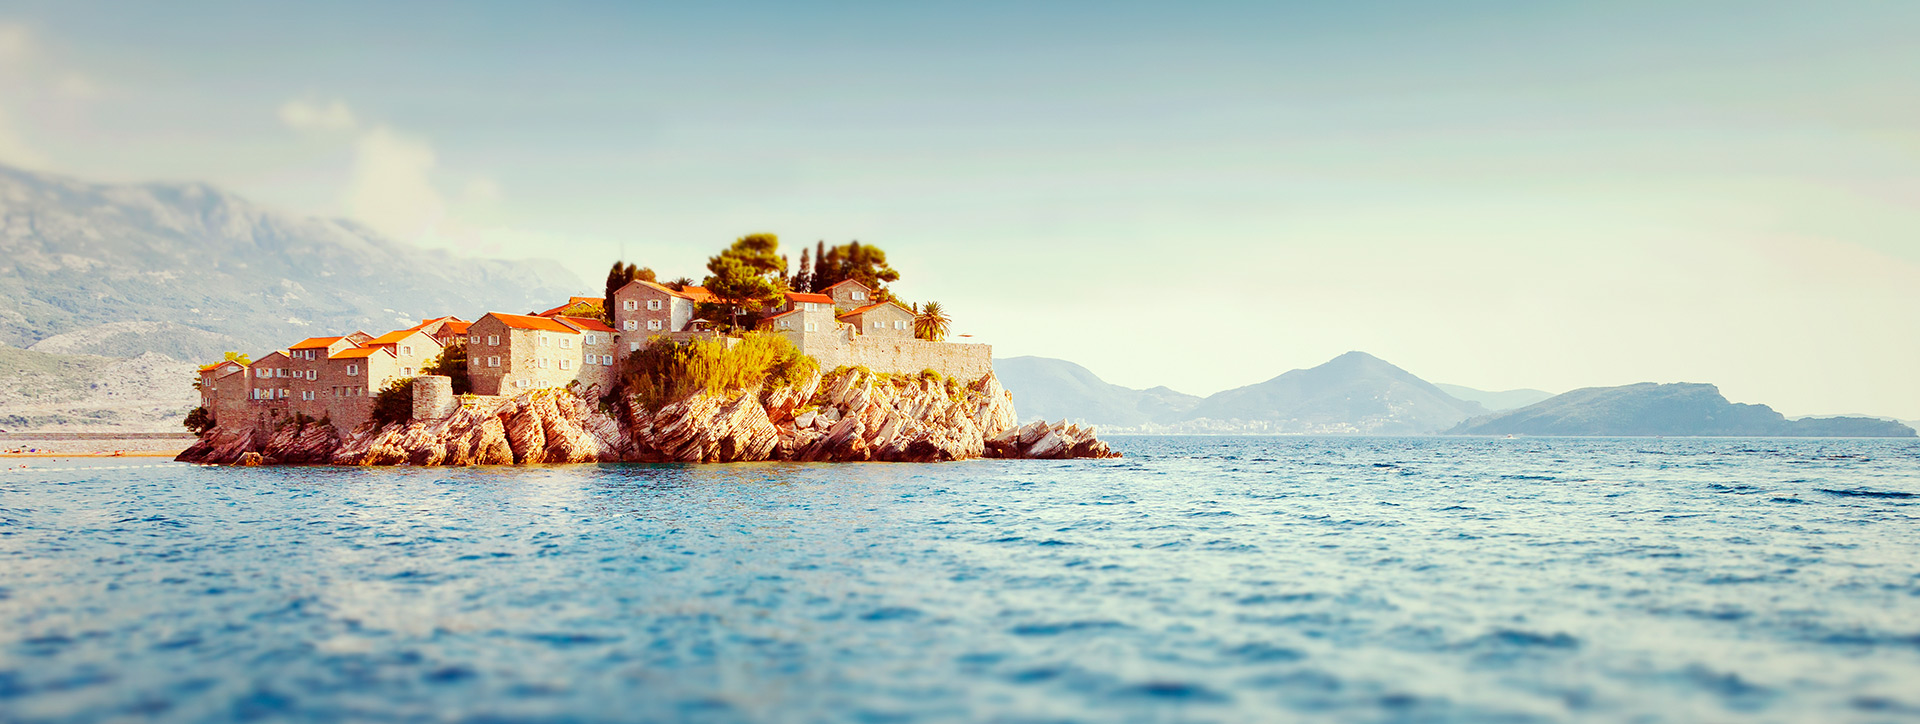 A view of the Sveti Stefan island from the sea, Montenegro - SimpleSail sailing routes